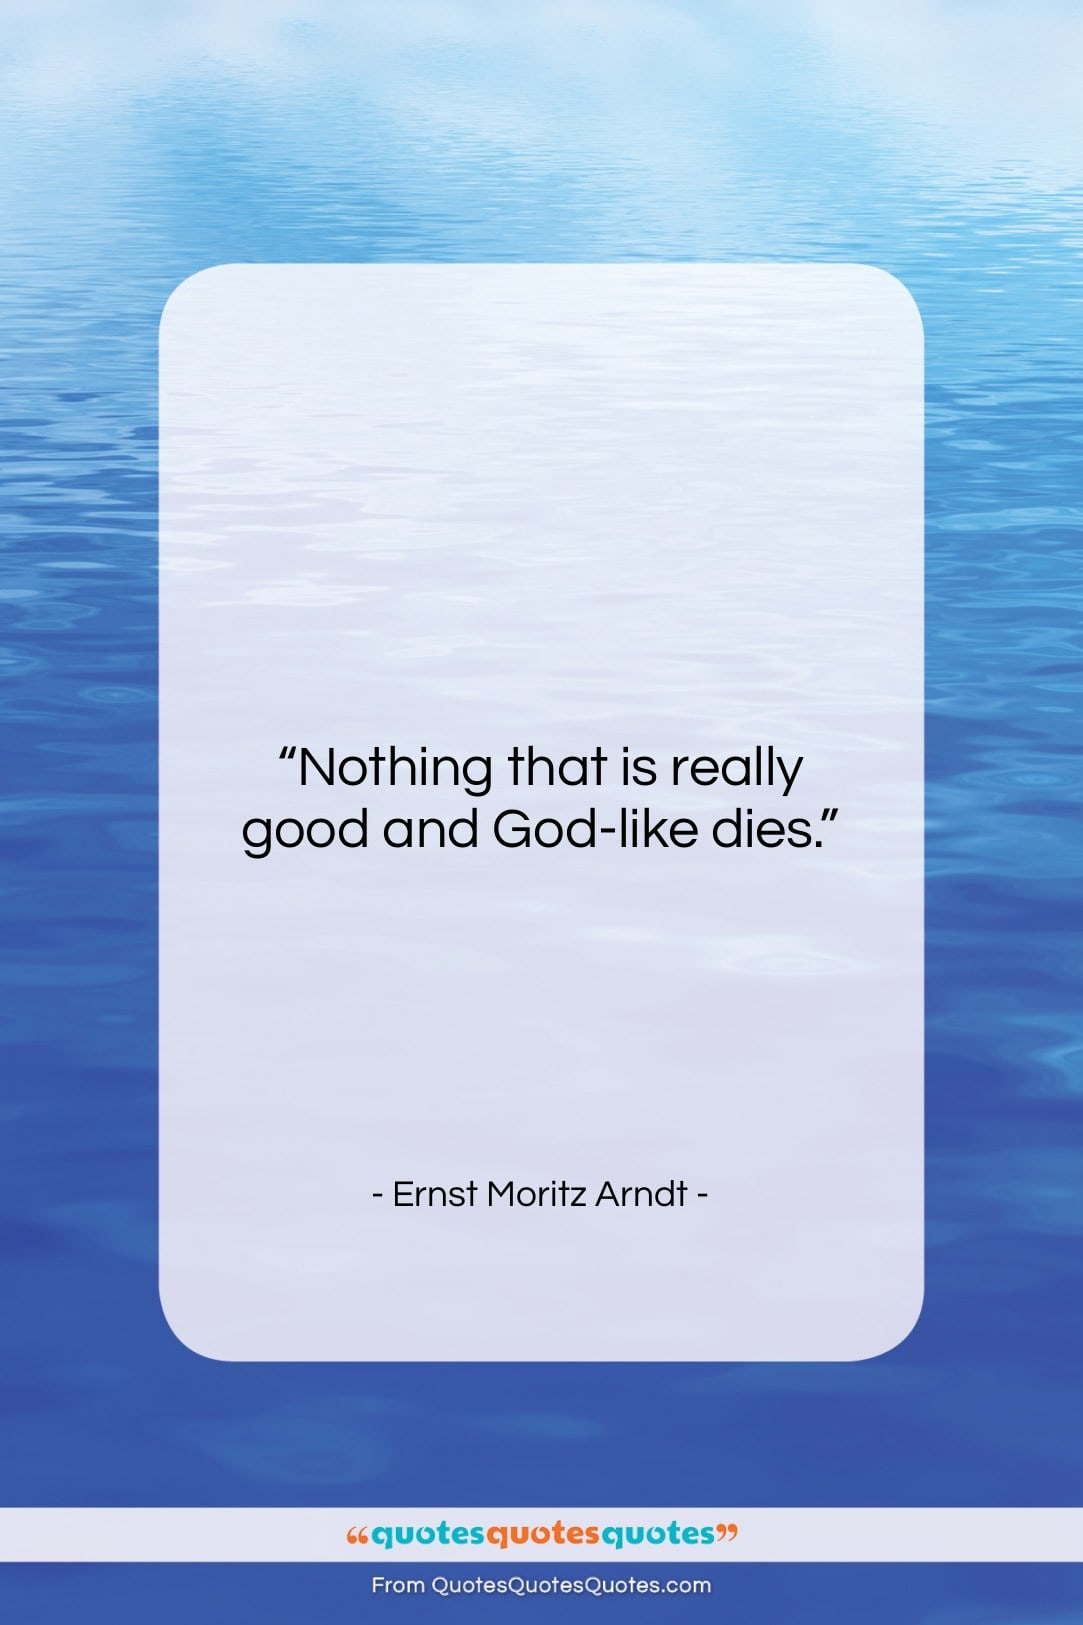 """Ernst Moritz Arndt quote: """"Nothing that is really good and God-like…""""- at QuotesQuotesQuotes.com"""